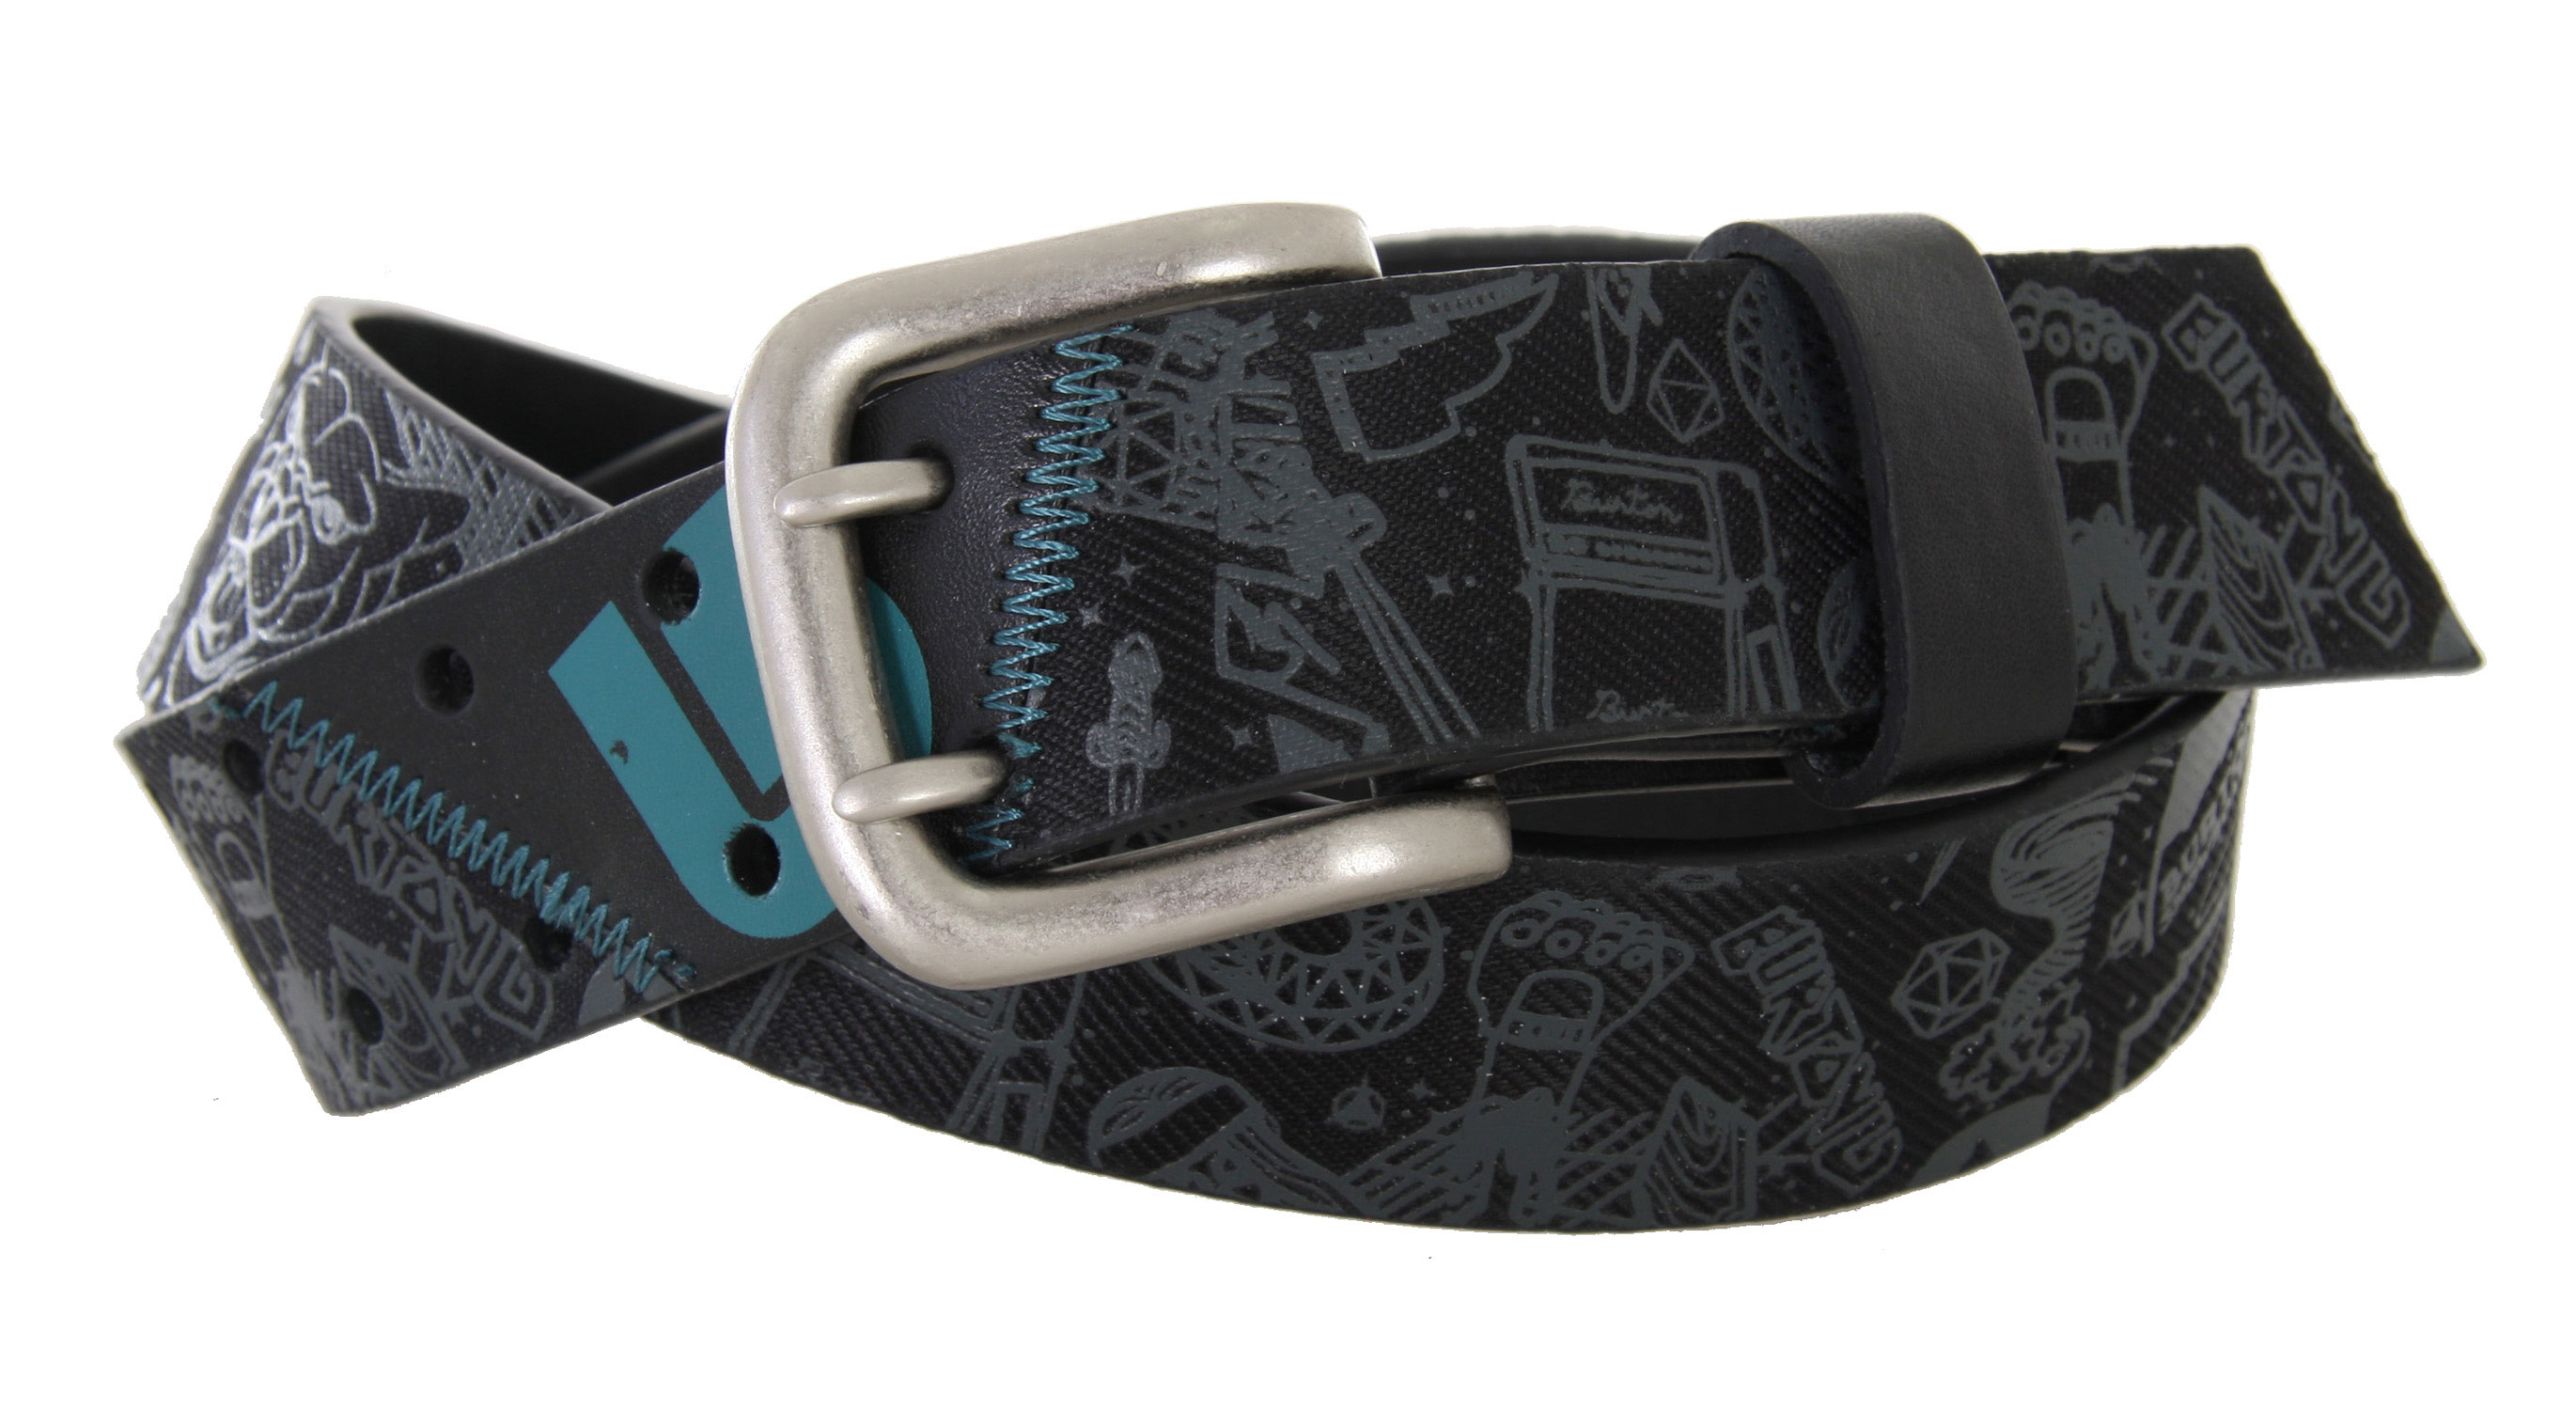 Snowboard You have to hold up your pants somehow, right? Do it with a classic belt from Burton, a company that knows how to make functional but stylish clothing and accessories. They're made for people like you: hip, unique, and always on the go. This belt is ready to put up with whatever you put it through. We know that you're going to want to wear it all the time, so we made it from super durable material that will hold up no matter what. - $26.57